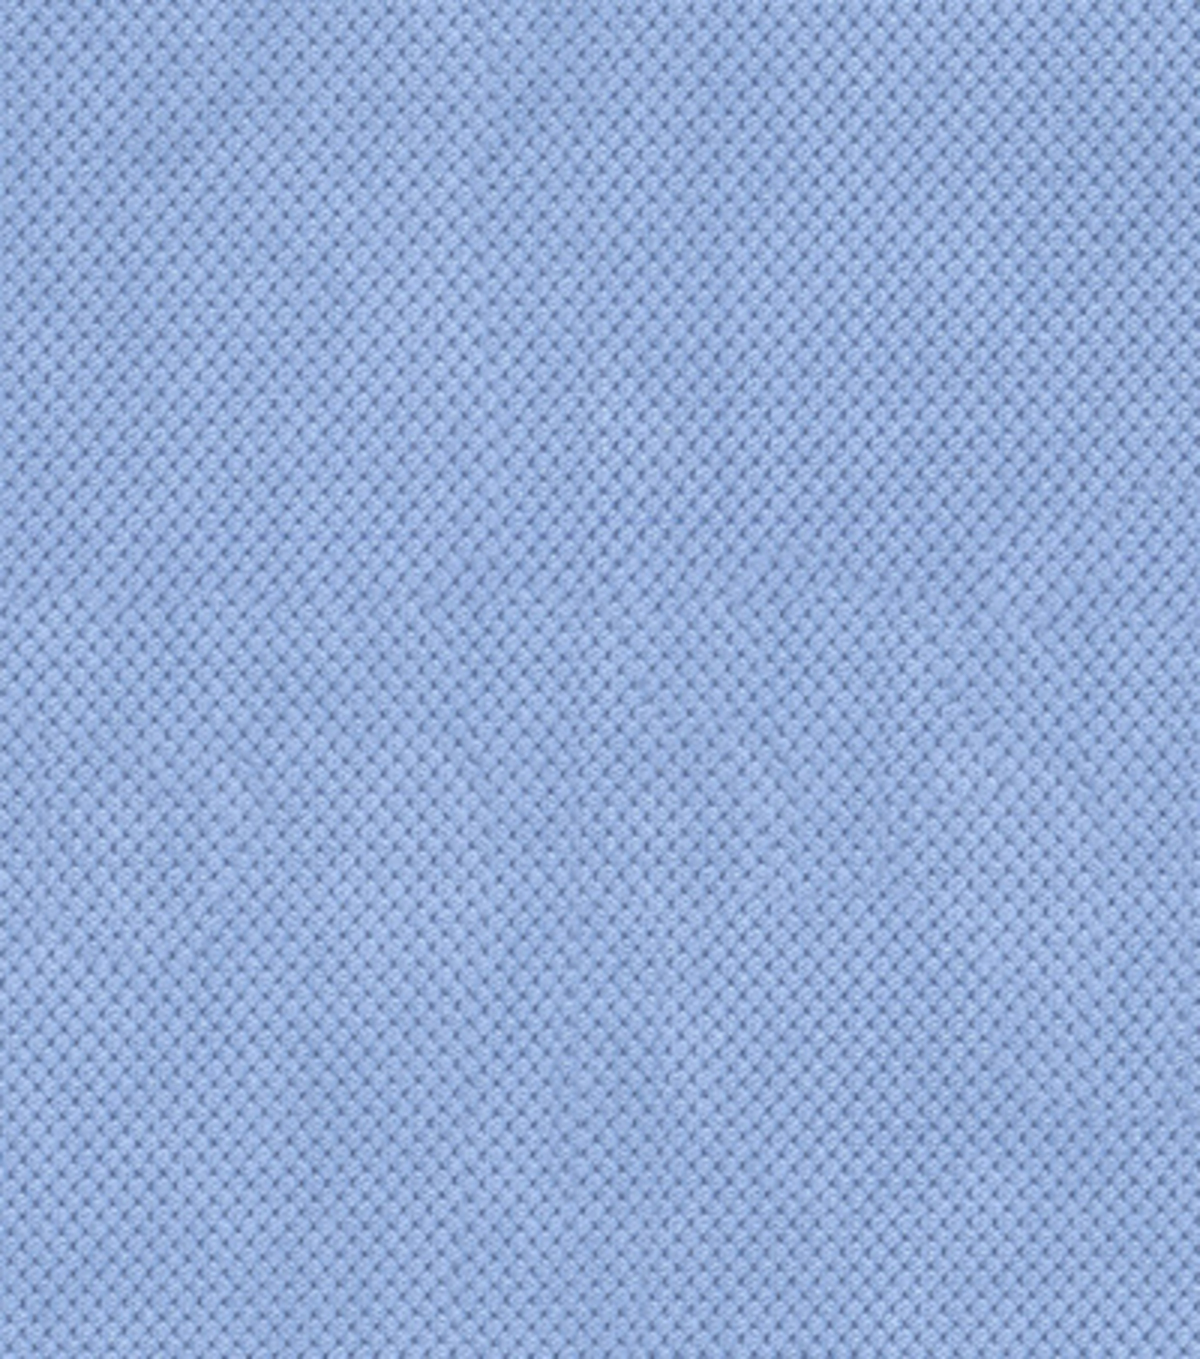 Home Decor 8\u0022x8\u0022 Fabric Swatch-Richloom Sig Series Bradford Horizon